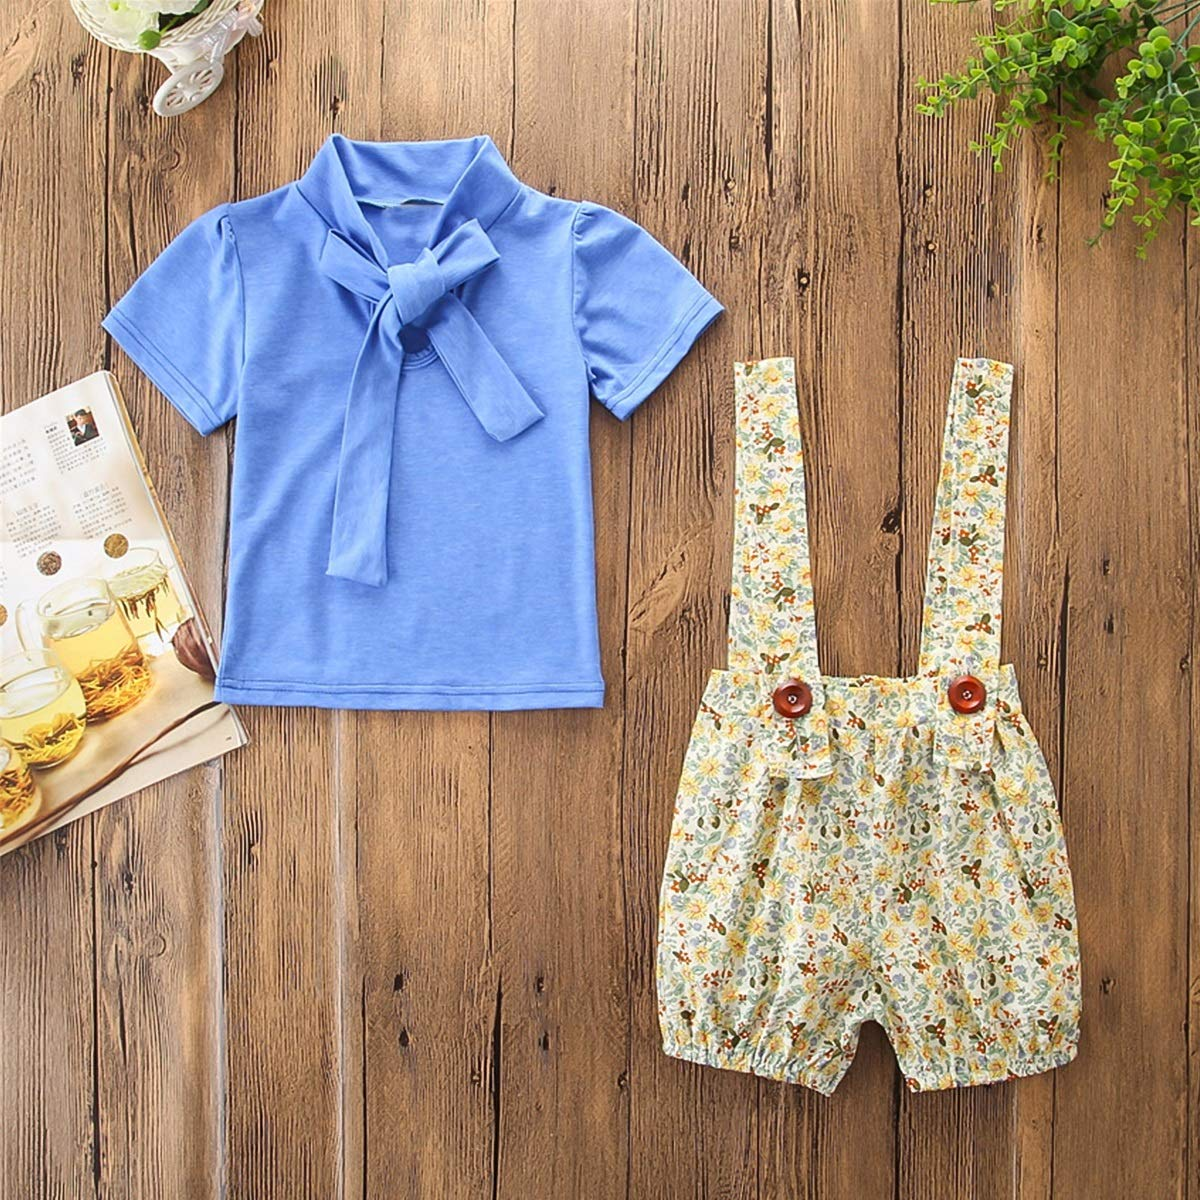 Floral Suspender Trousers Overalls Outfits Set puseky 2pcs//Set Kids Girls Clothes Bow Tie Shirt Tops